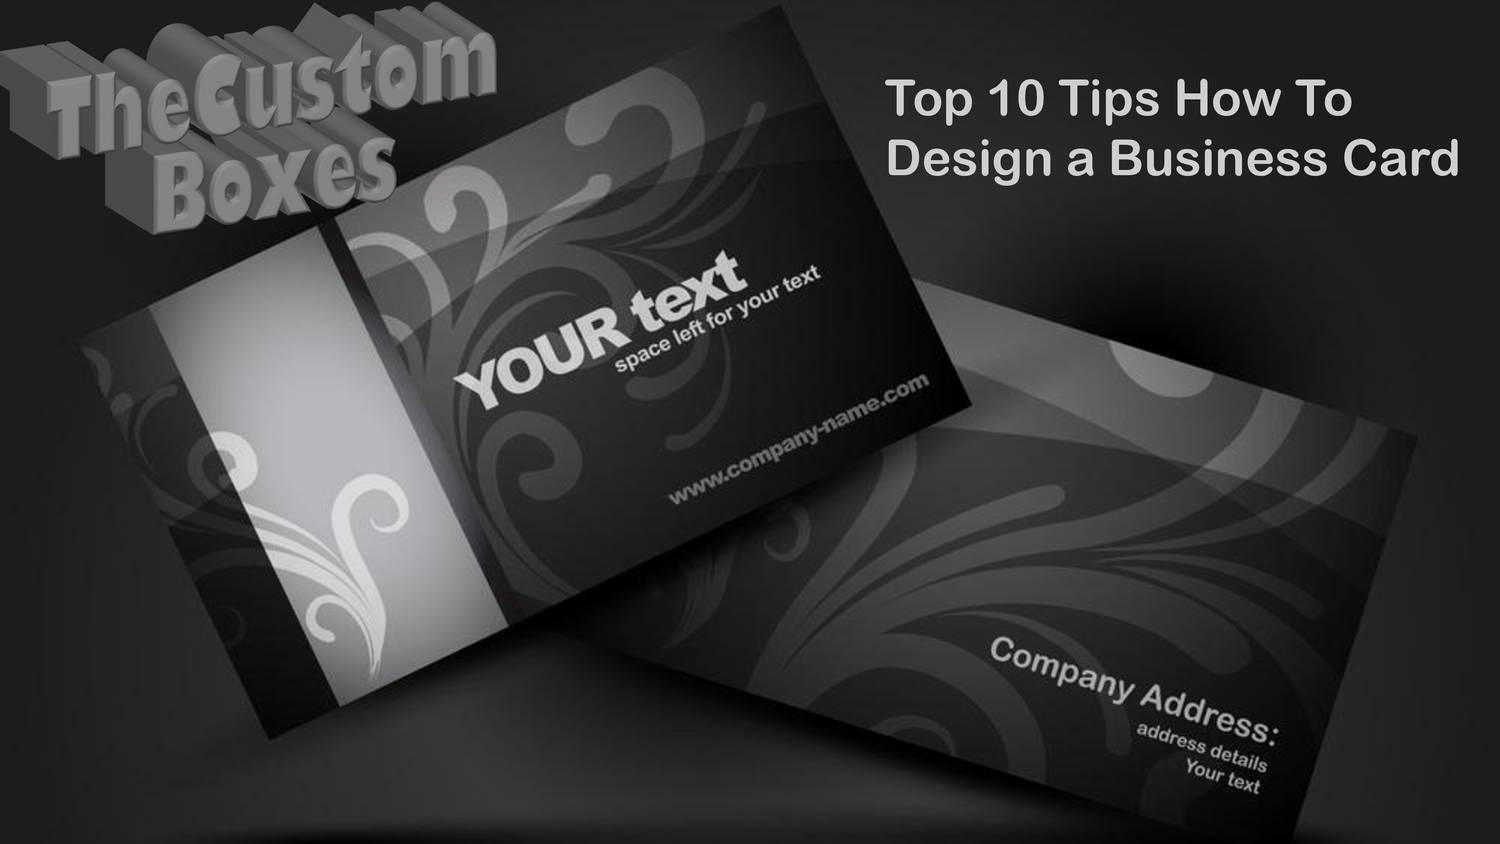 Top 10 Tips How To Design a Business Card.pdf - DocDroid